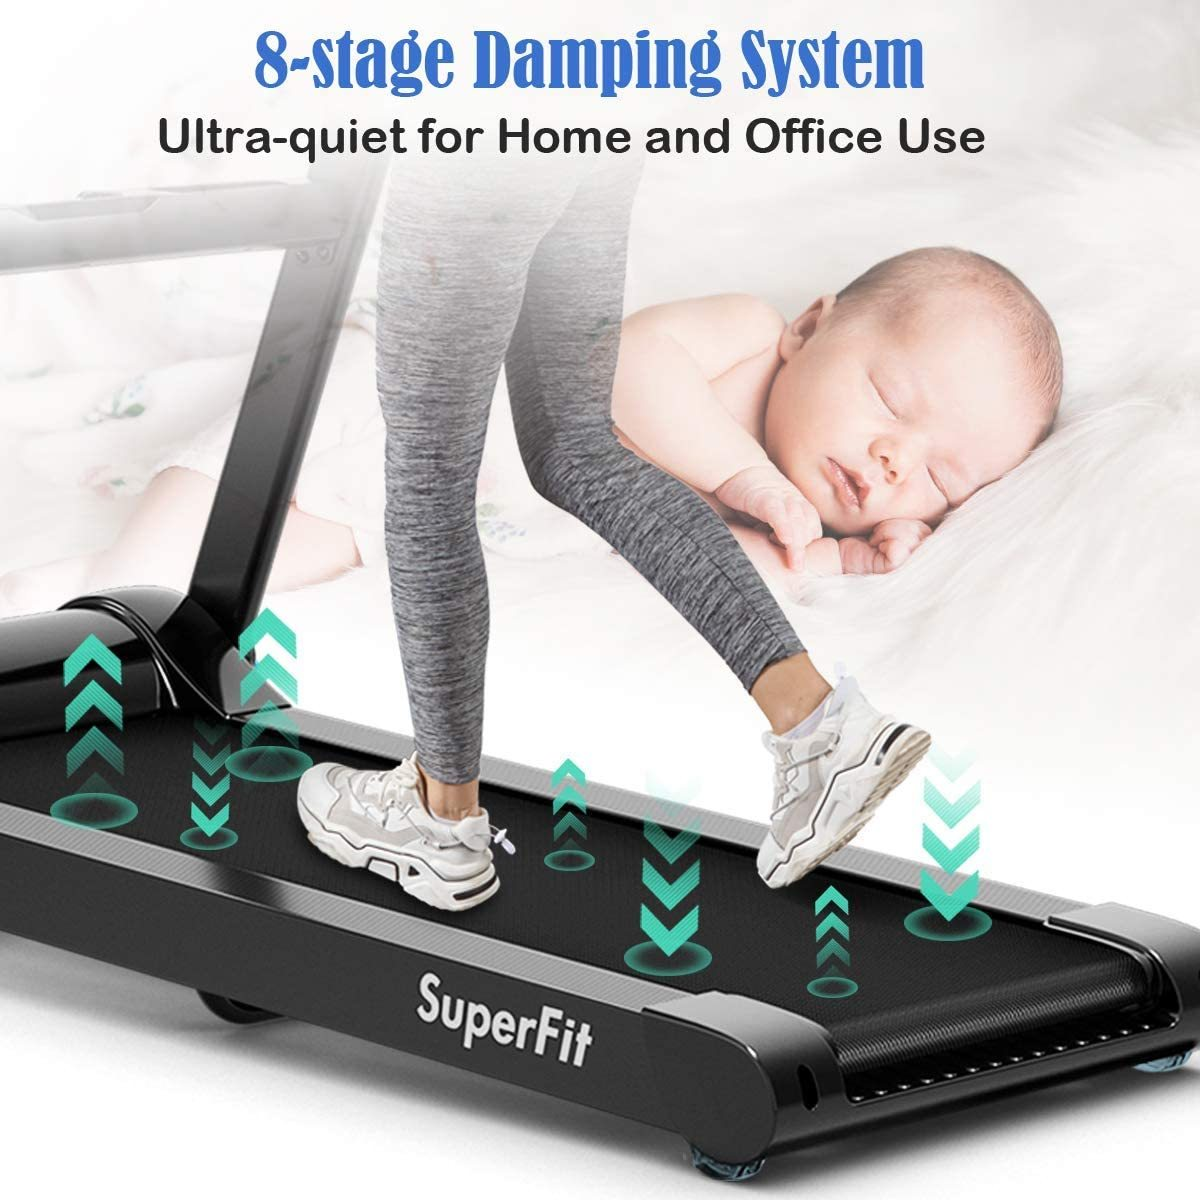 2.25HP Large Electric Folding Treadmill, with 8-Stage Damping System, Large LED Touch Display and Bluetooth Speaker, Sports Car Appearance Running Walking Machine for Home Office Gym Use